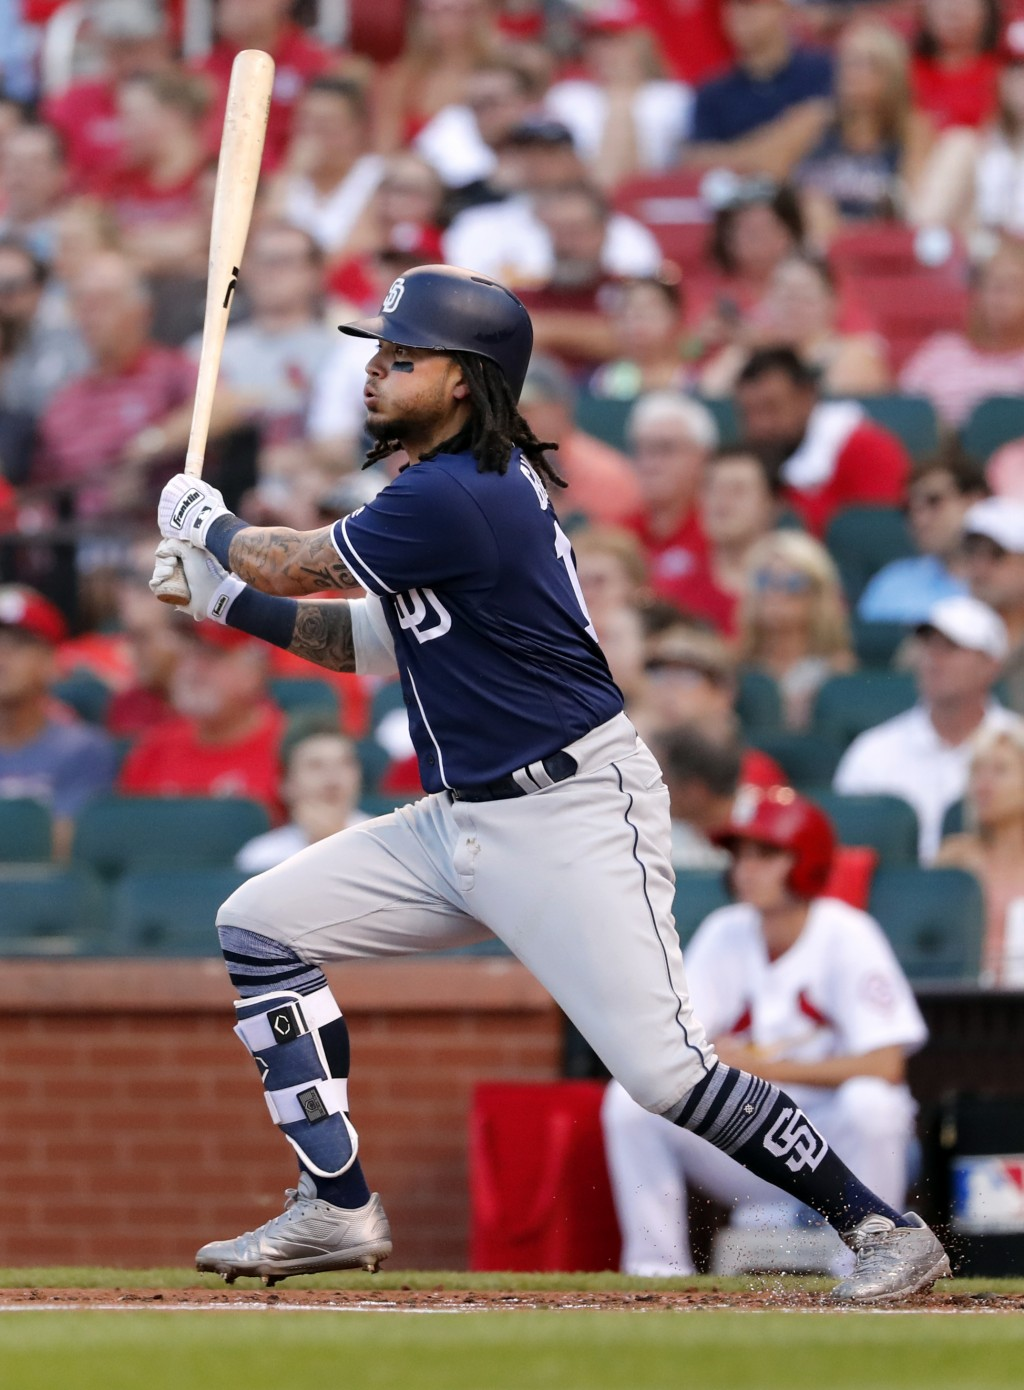 San Diego Padres' Freddy Galvis watches his two-run double during the first inning of a baseball game against the St. Louis Cardinals on Wednesday, Ju